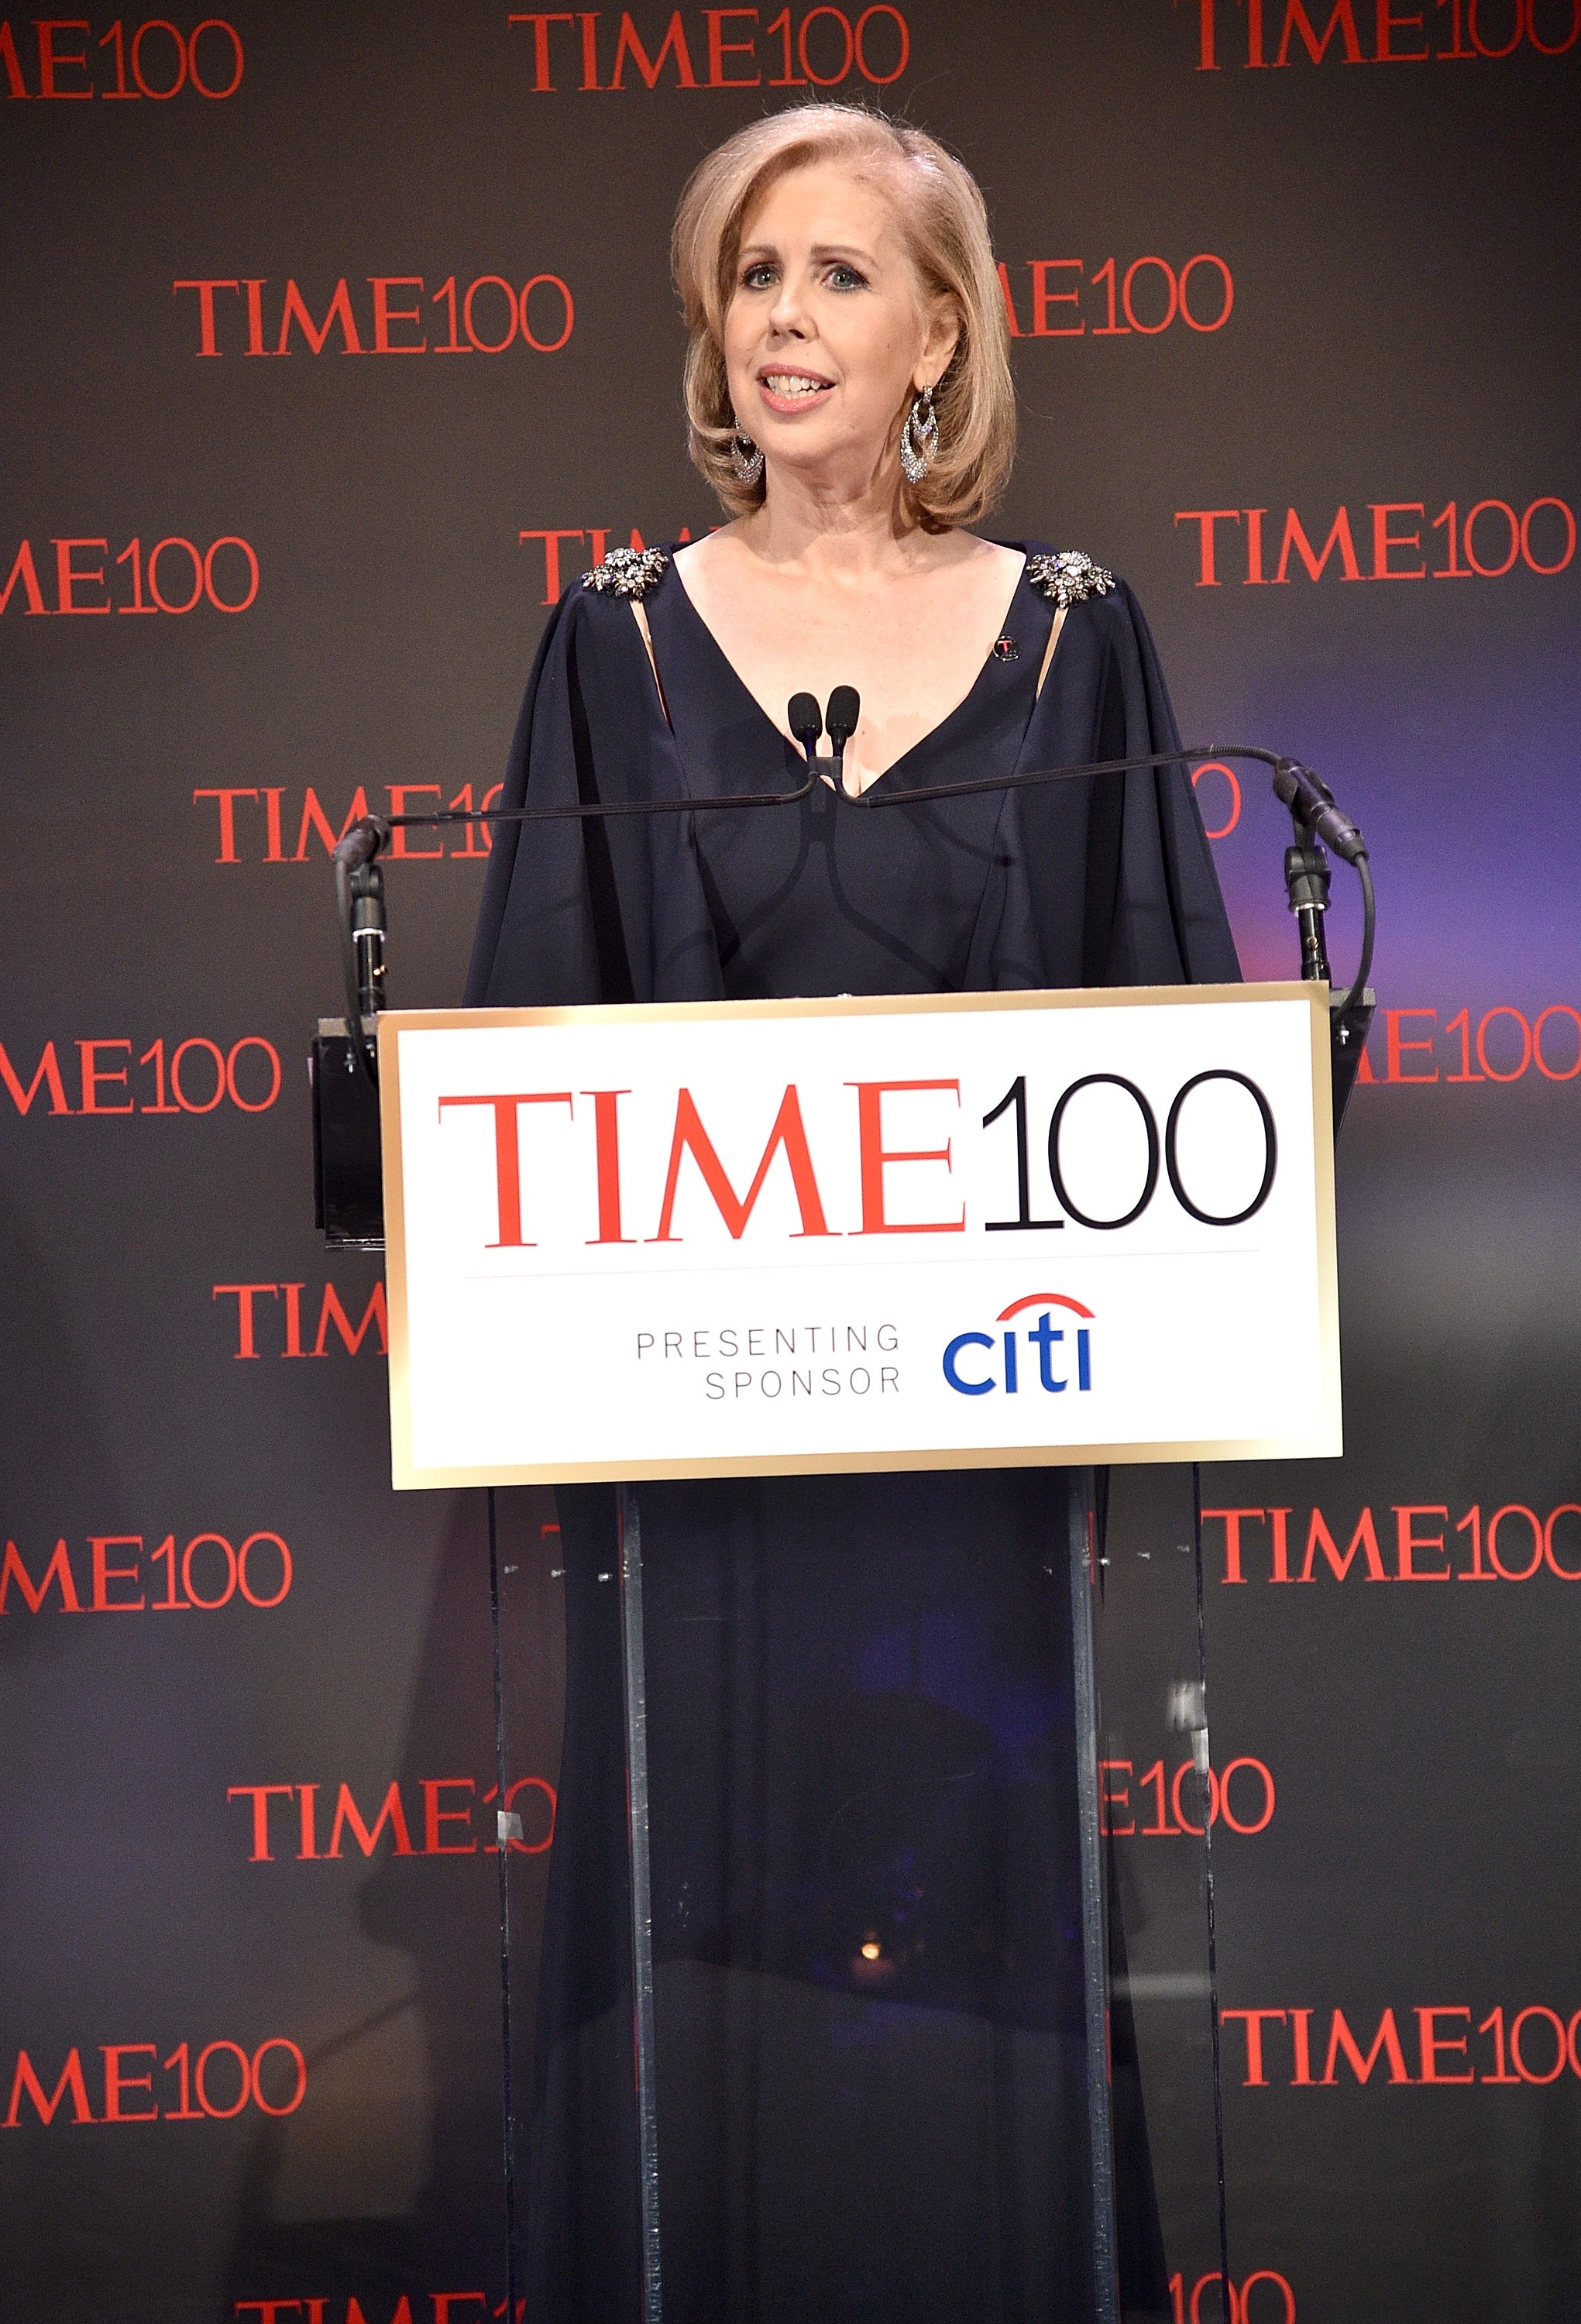 TIME managing editor Nancy Gibbs speaks during 2017 Time 100 Gala at Jazz at Lincoln Center on April 25, 2017 in New York City.